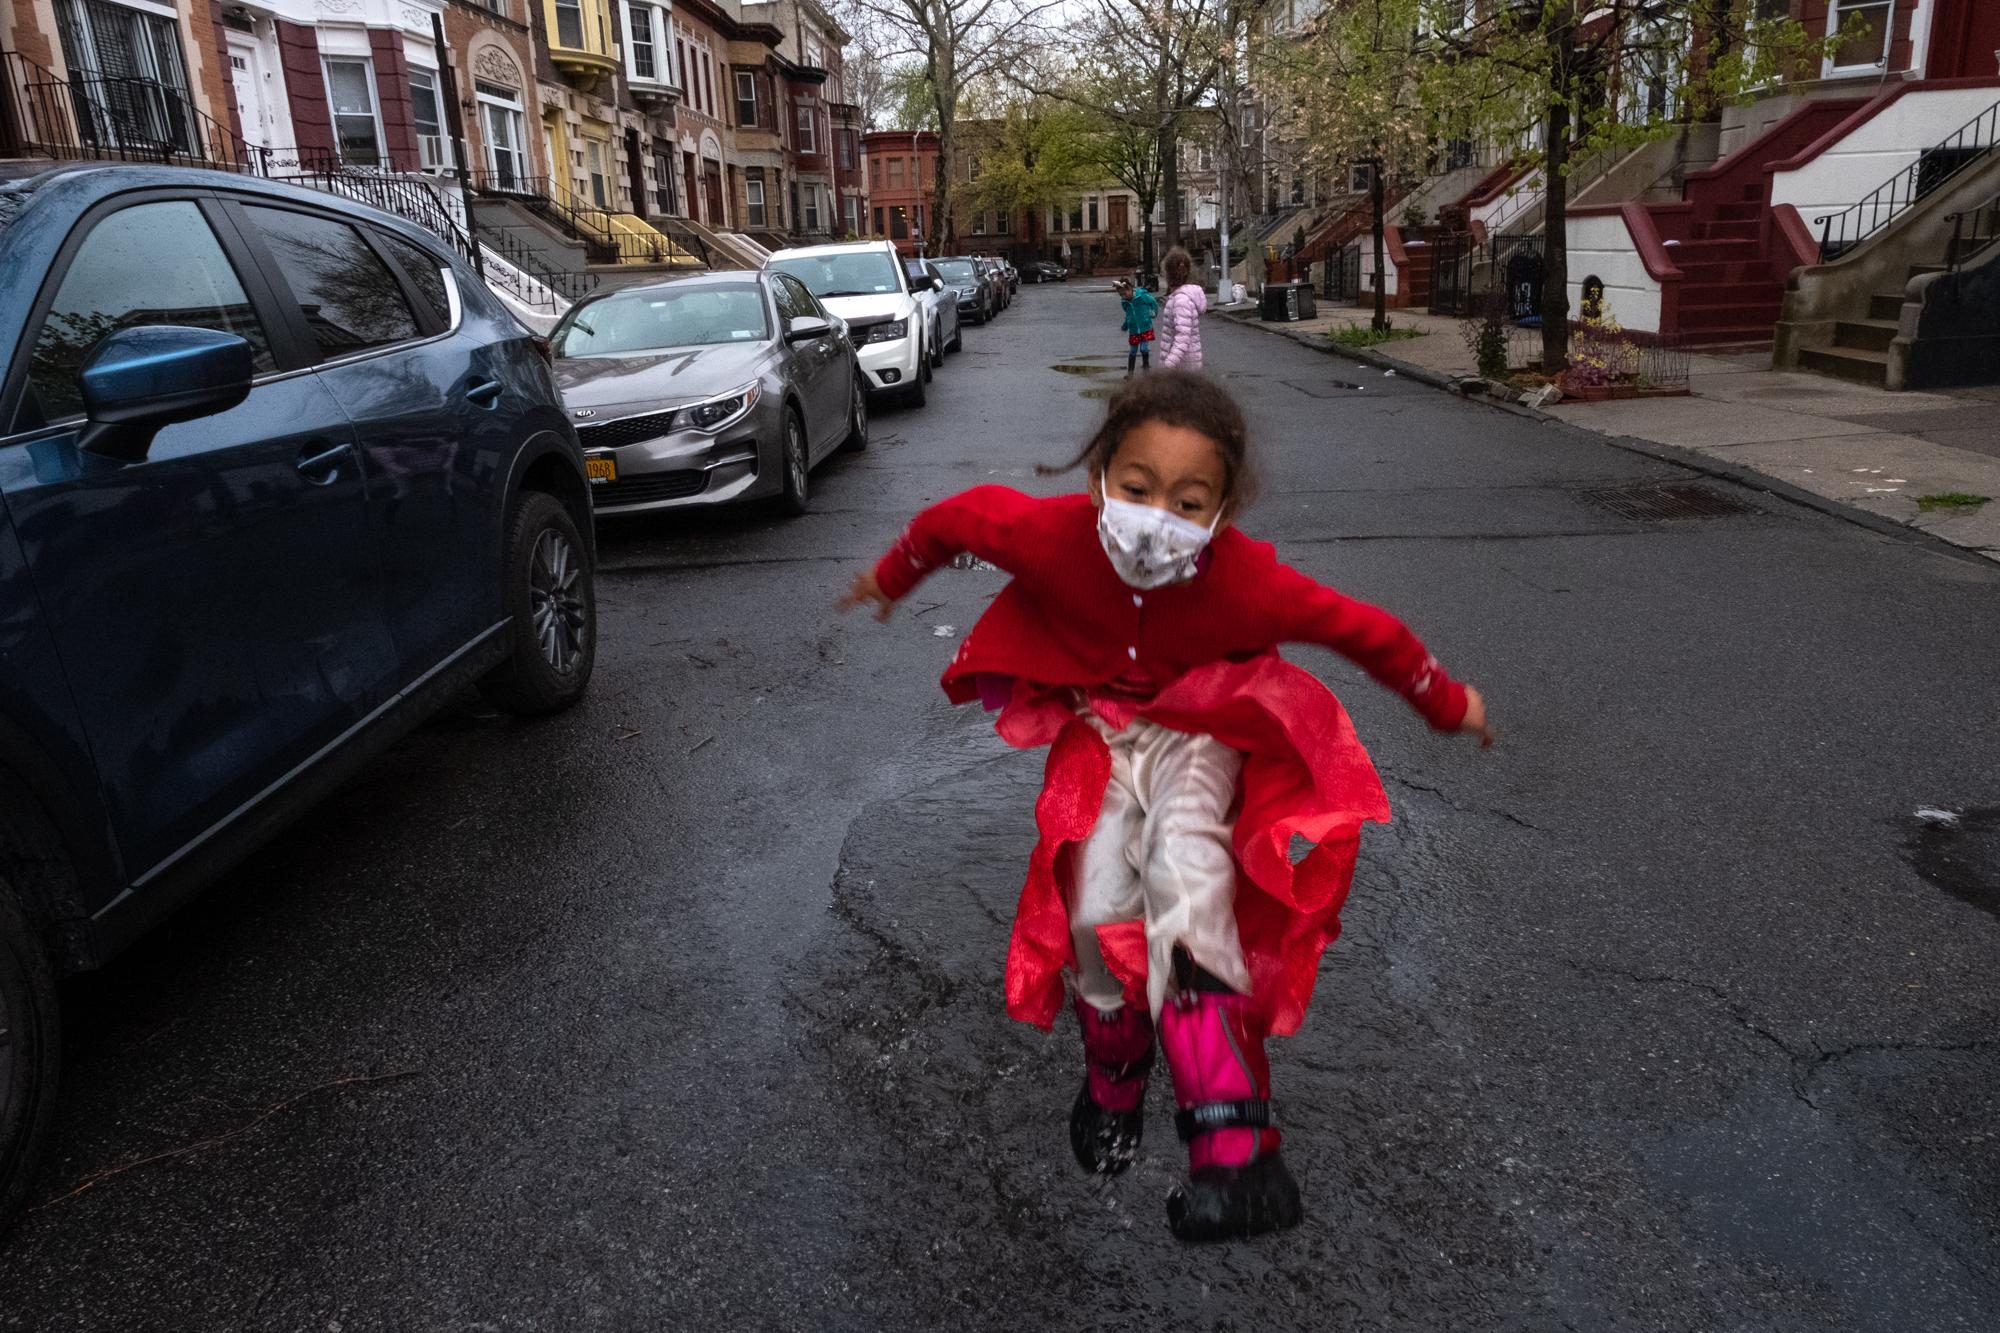 April 24, 2020: Today Amal turned 6. Four families on the block come out with signs for a socially distanced rendition of happy birthday. Afterwards the kids gleefully jump in puddles. I've lost track of how long it's been since we went out front. Needless to say it is the highlight of our lockdown. So much has changed since the beginning of the pandemic. Most of us have lost people we love and the kids no longer need reminding to stay far apart.